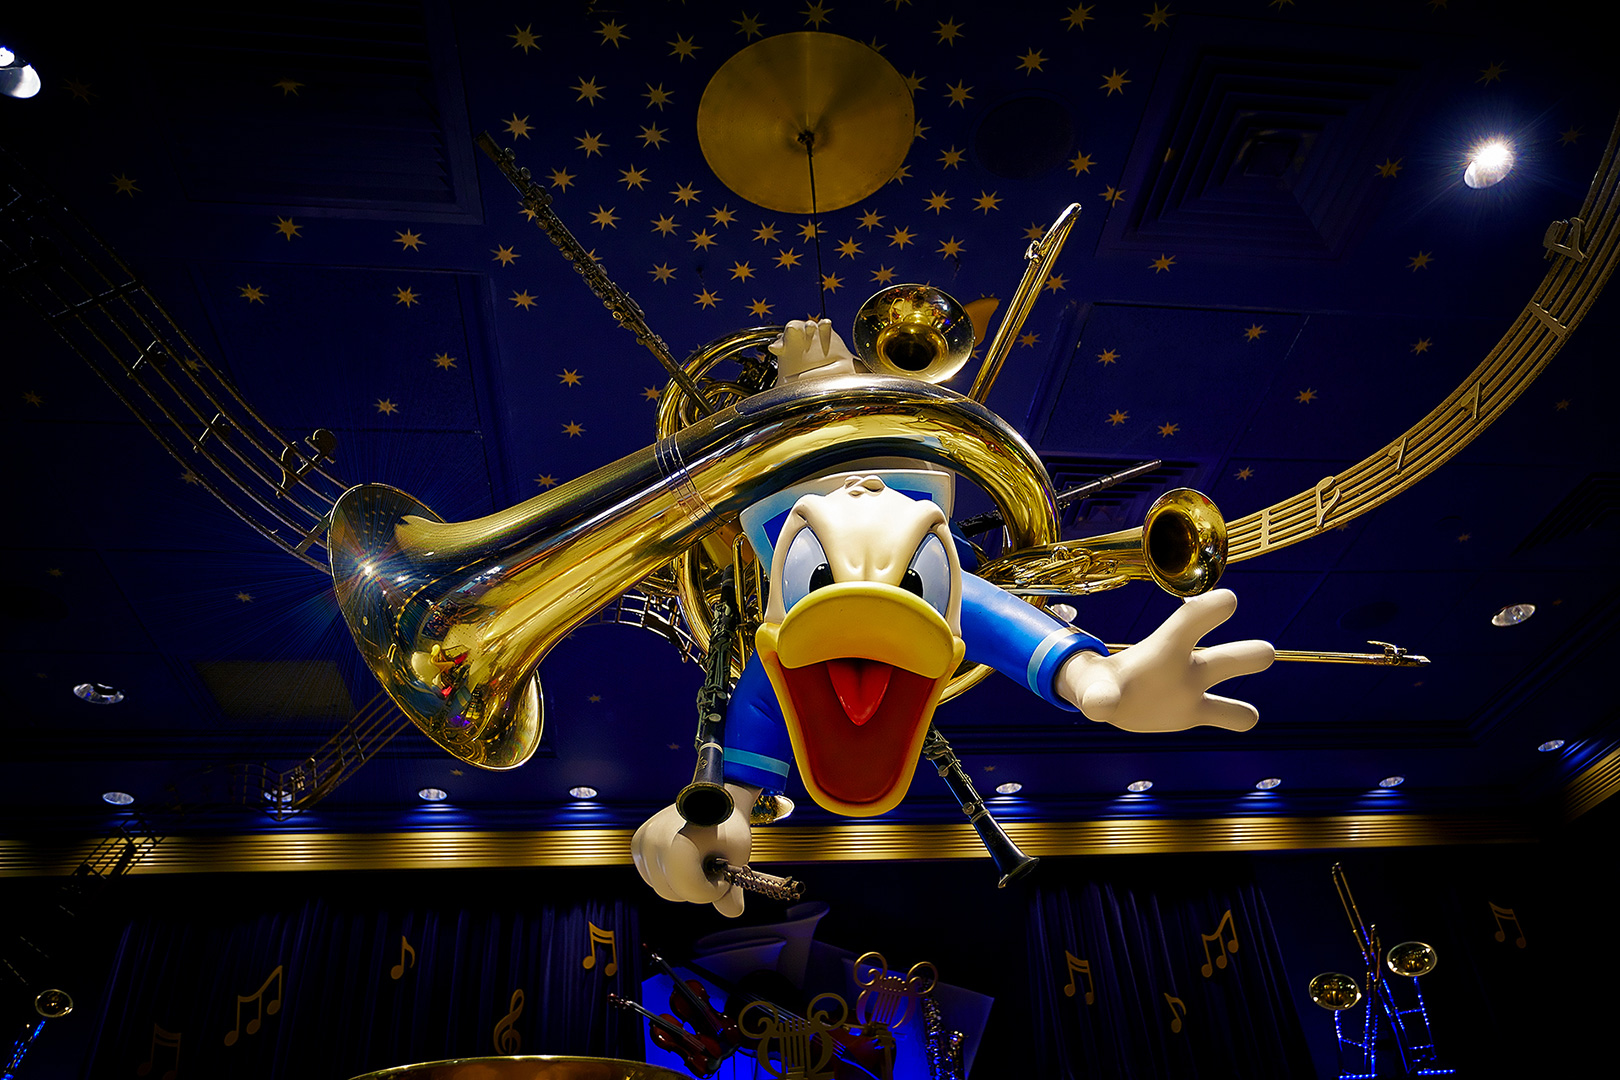 Disney Photography, Disney World Photography, Disneyland Photography, Disney Photos, Disney Pictures, Walt Disney World, The Magic Kingdom, Walt Disney, Mickey Mouse, Orlando, Florida, Theme Park,  Donal Duck, Philharmagic